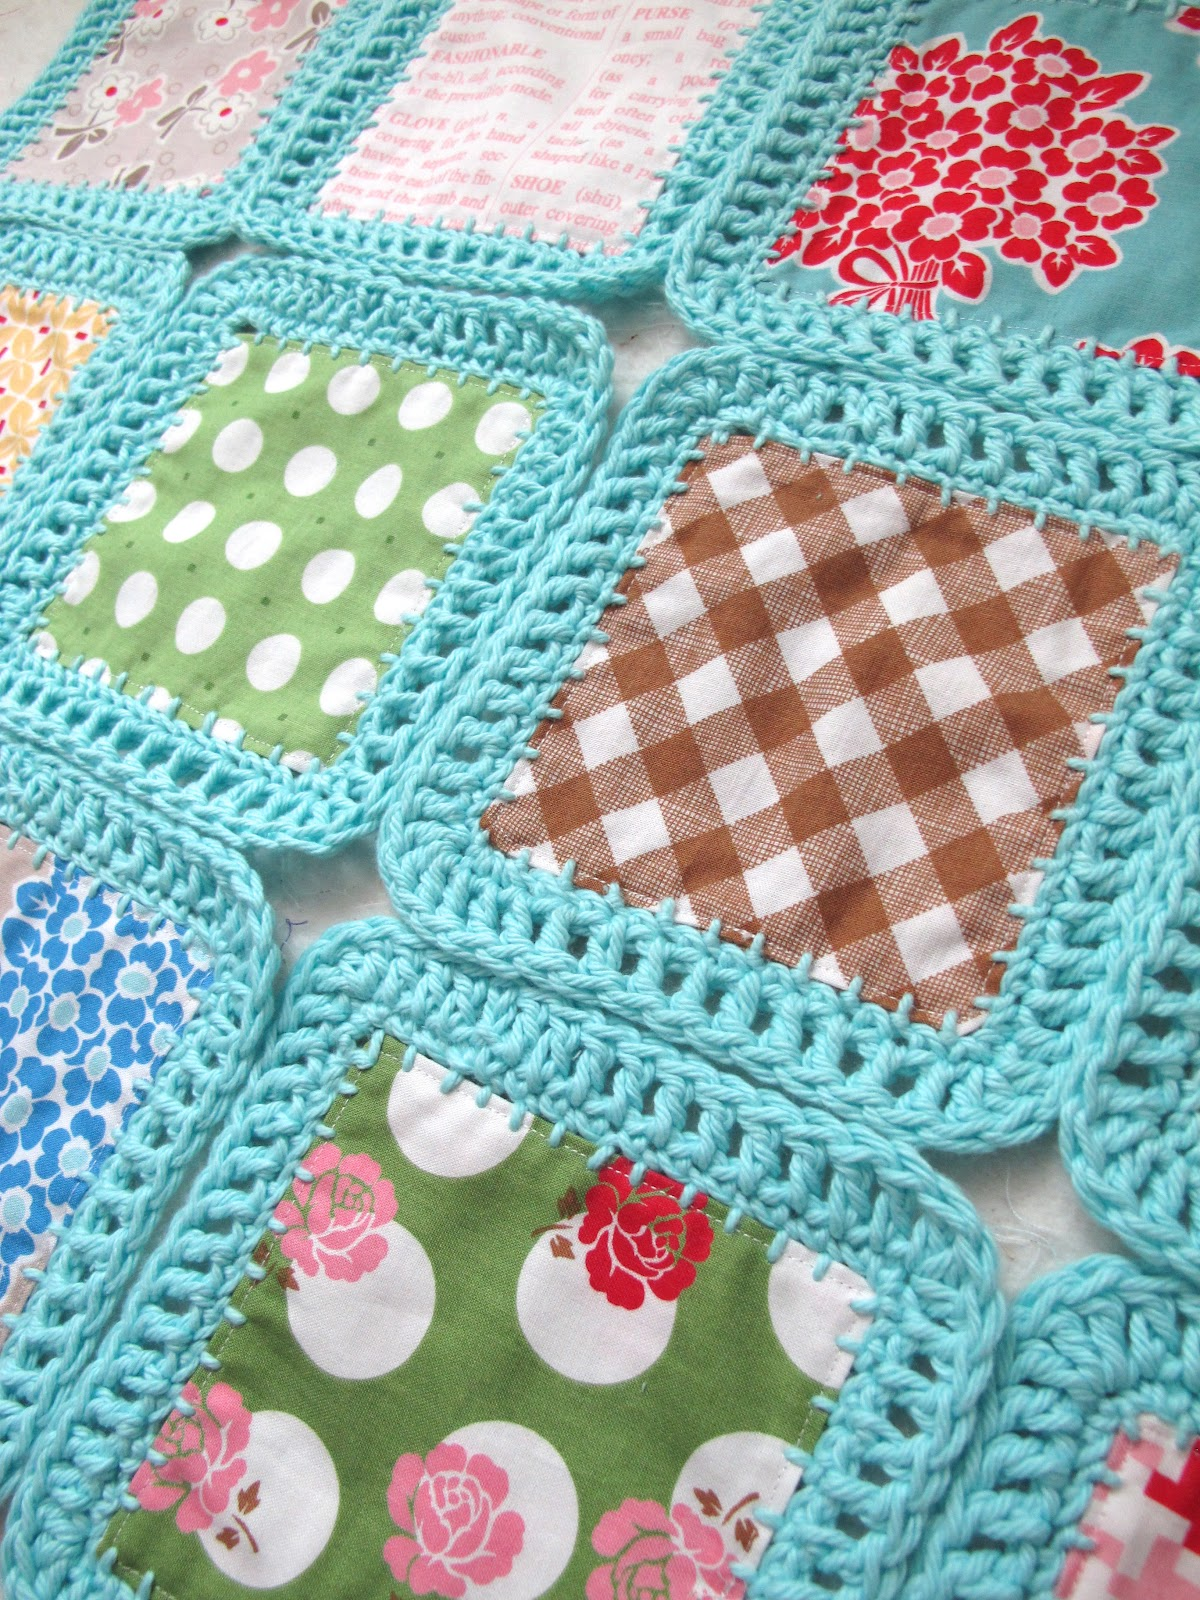 Crocheting On Fabric : Fabric And Crochet Blanket Will Need To Make This Pictures to pin on ...